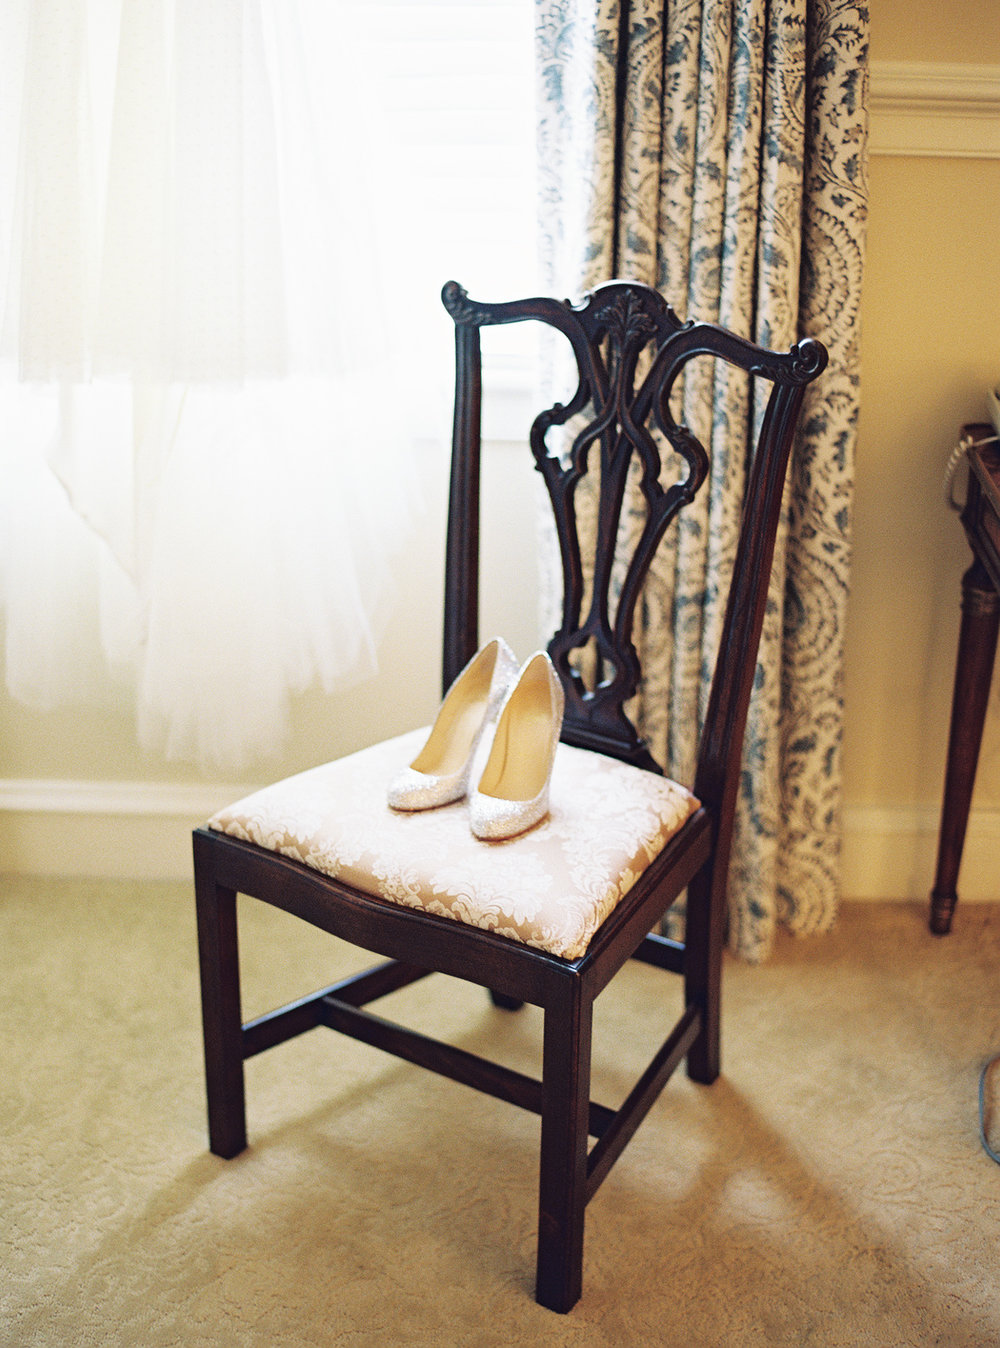 0132adam barnes photography keswick hall charlottesville virginia wedding.jpg